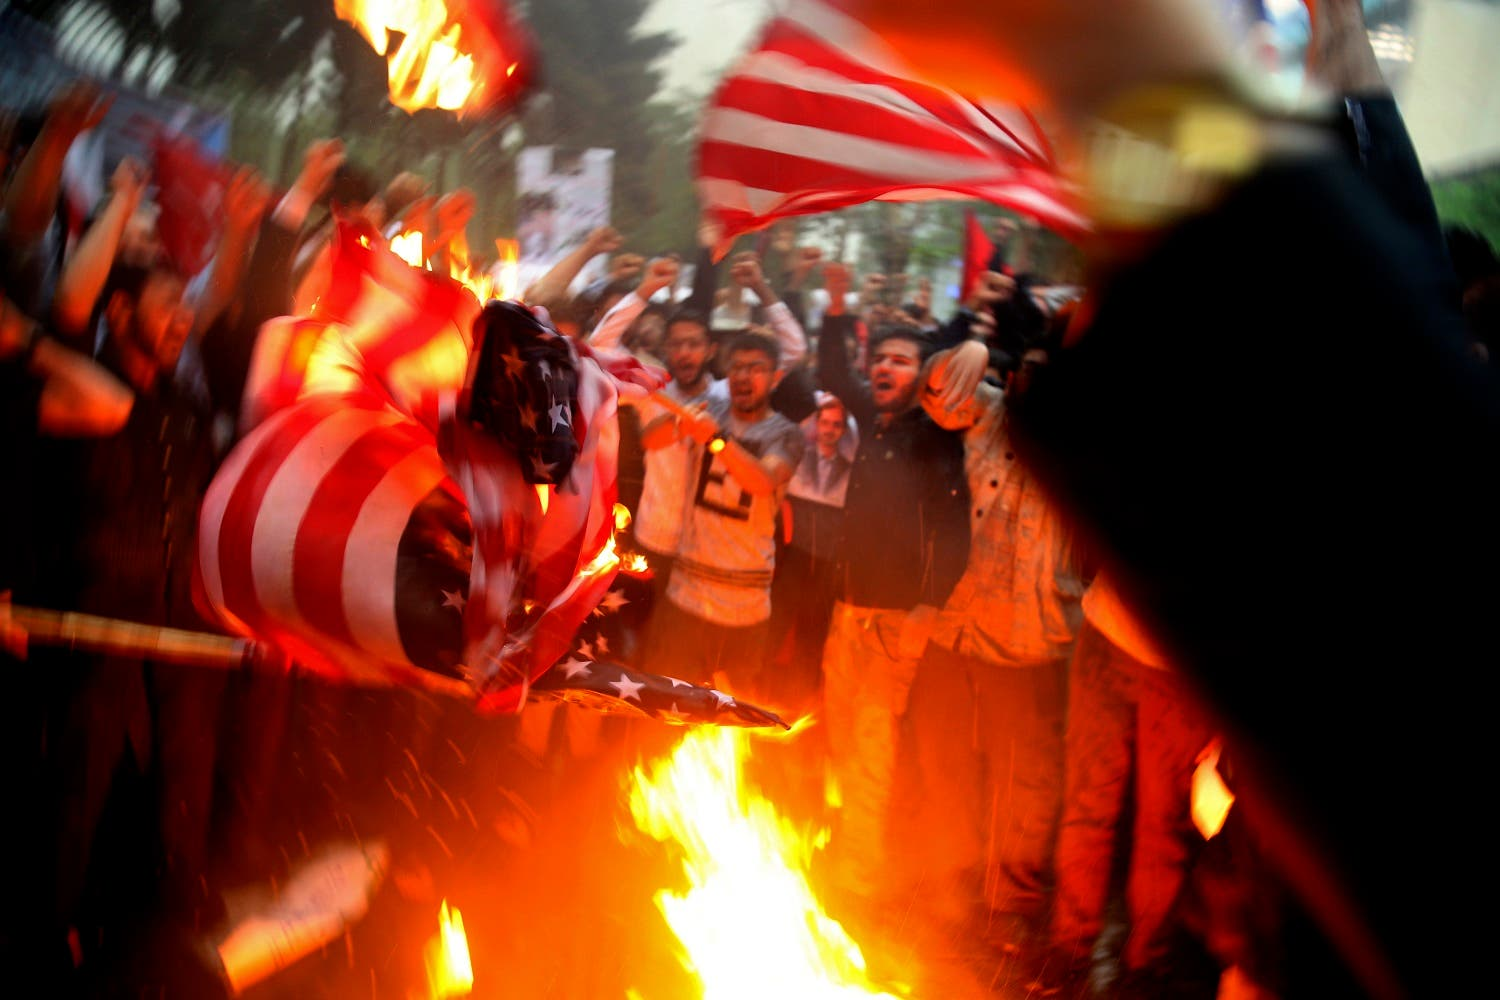 Iranian demonstrators burn representations of the US flag in front of the former US Embassy in Tehran on May 9, 2018. (AP)